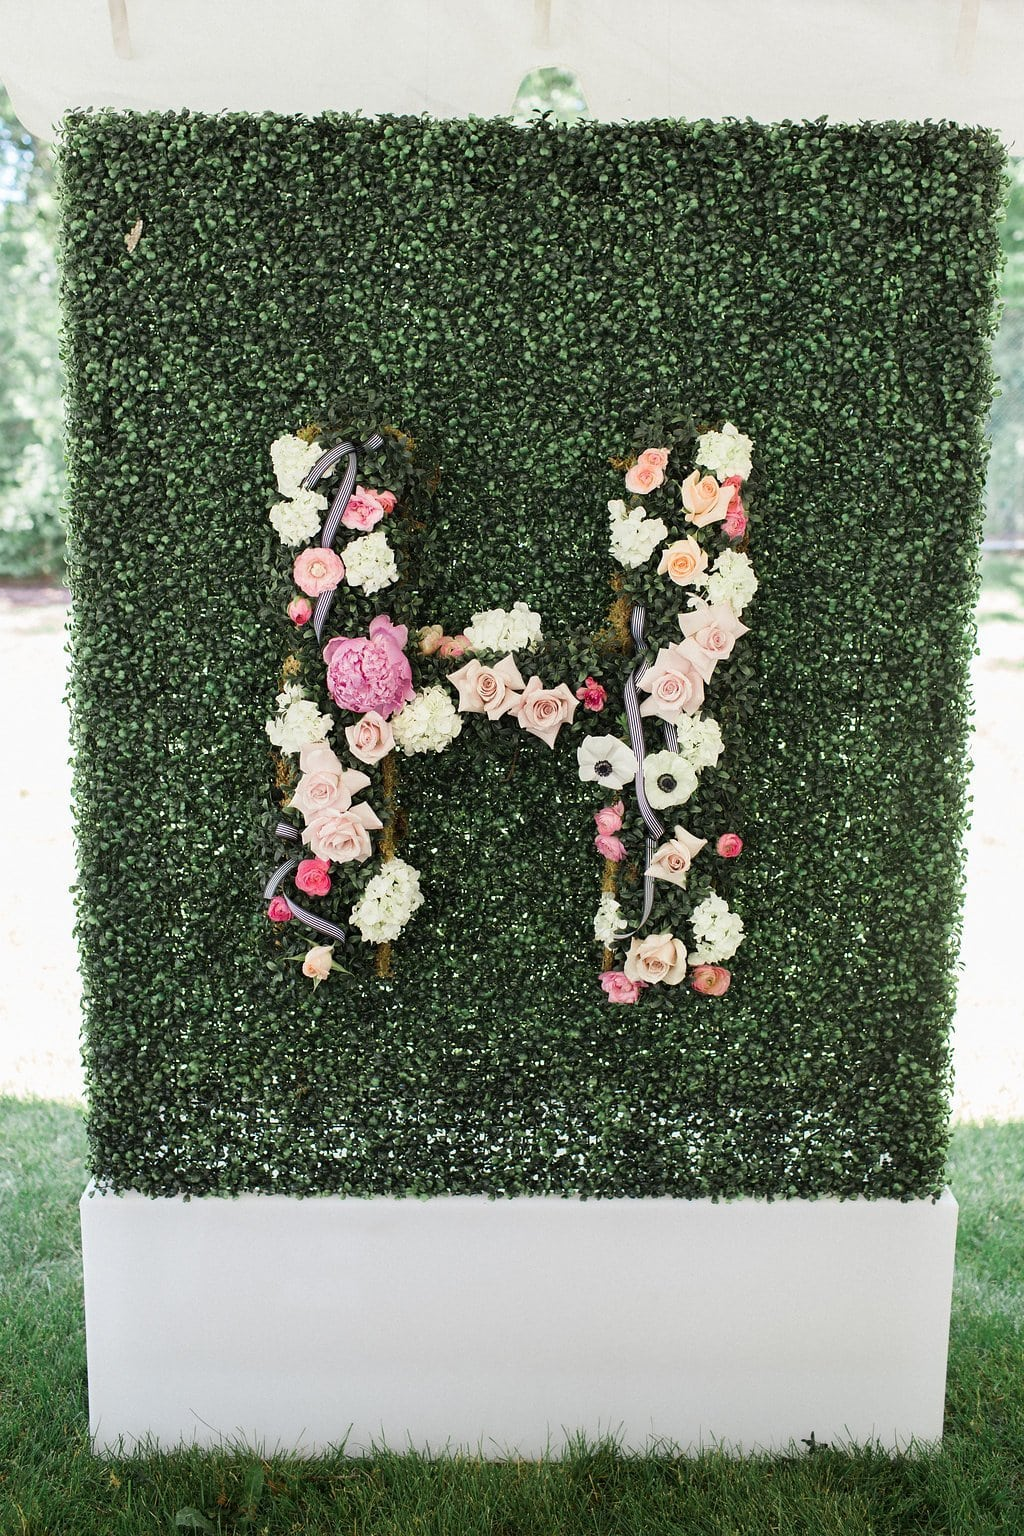 greenery wall with floral accents at bridal shower - Black & White Kate Spade Inspired Bridal Shower